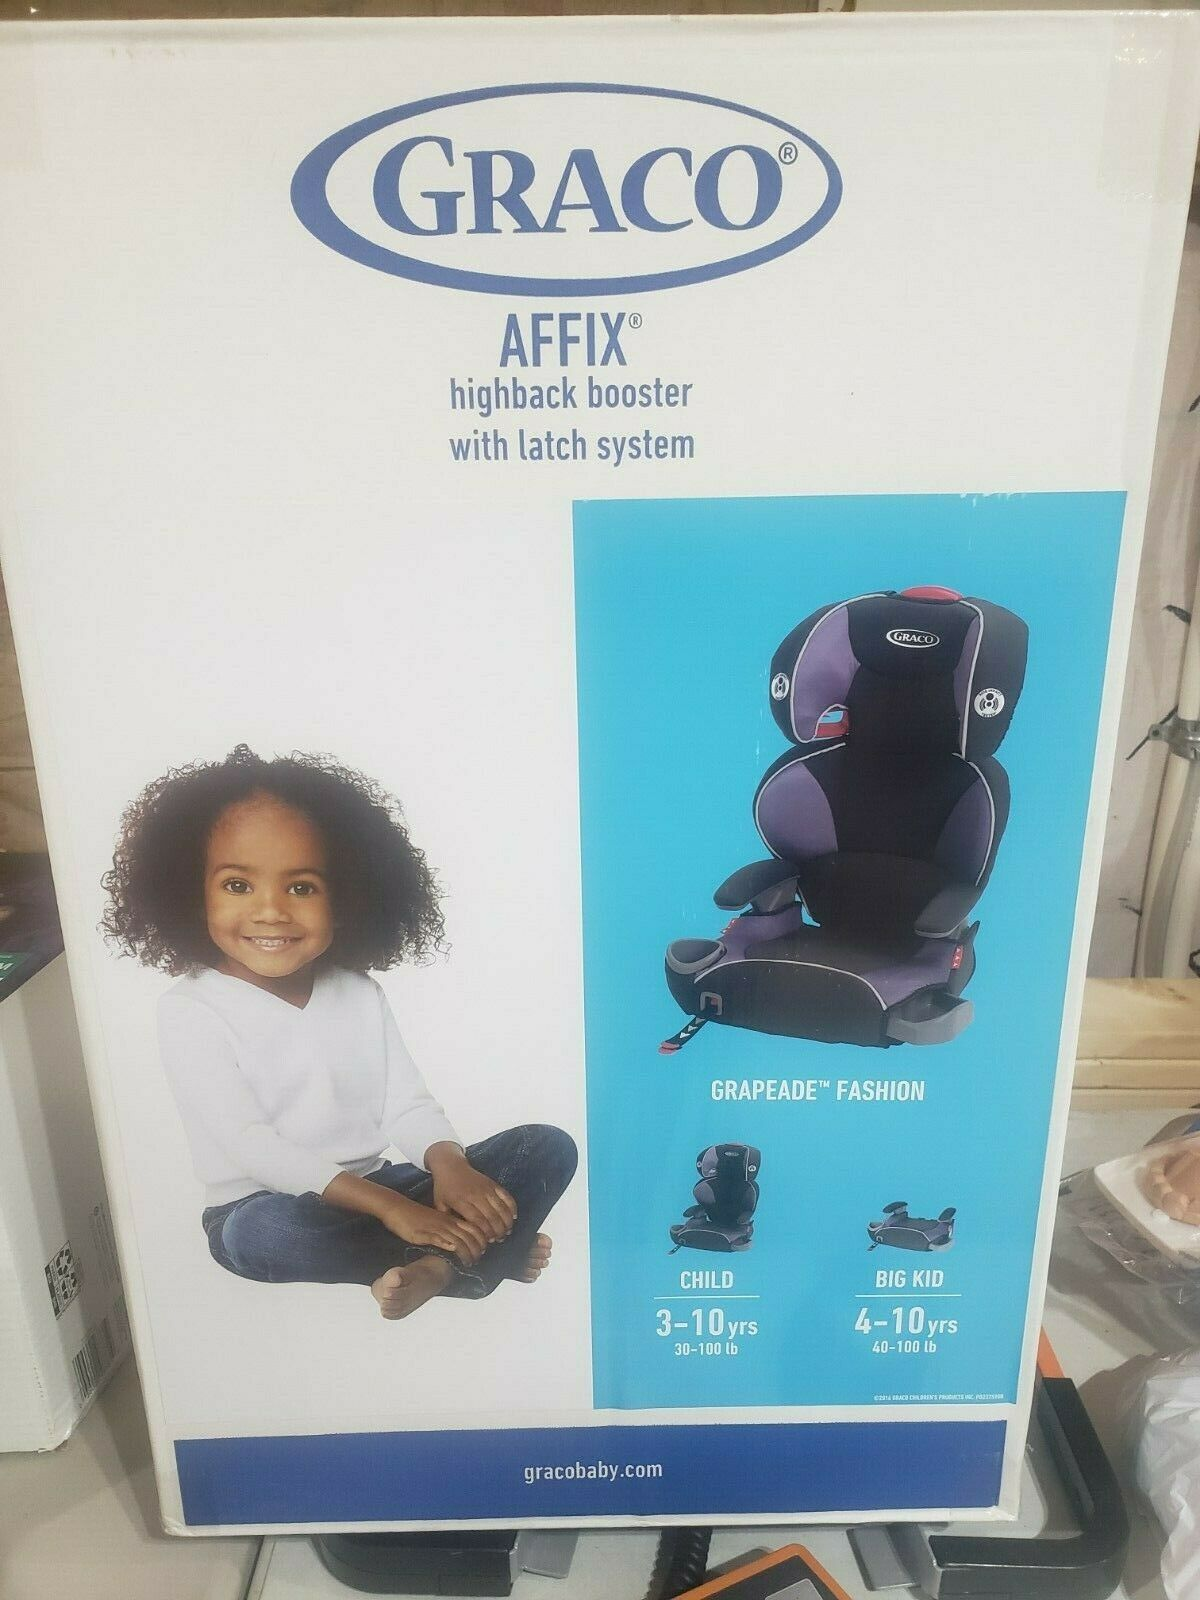 Graco Affix Highback Booster Seat with Latch System, Grapead